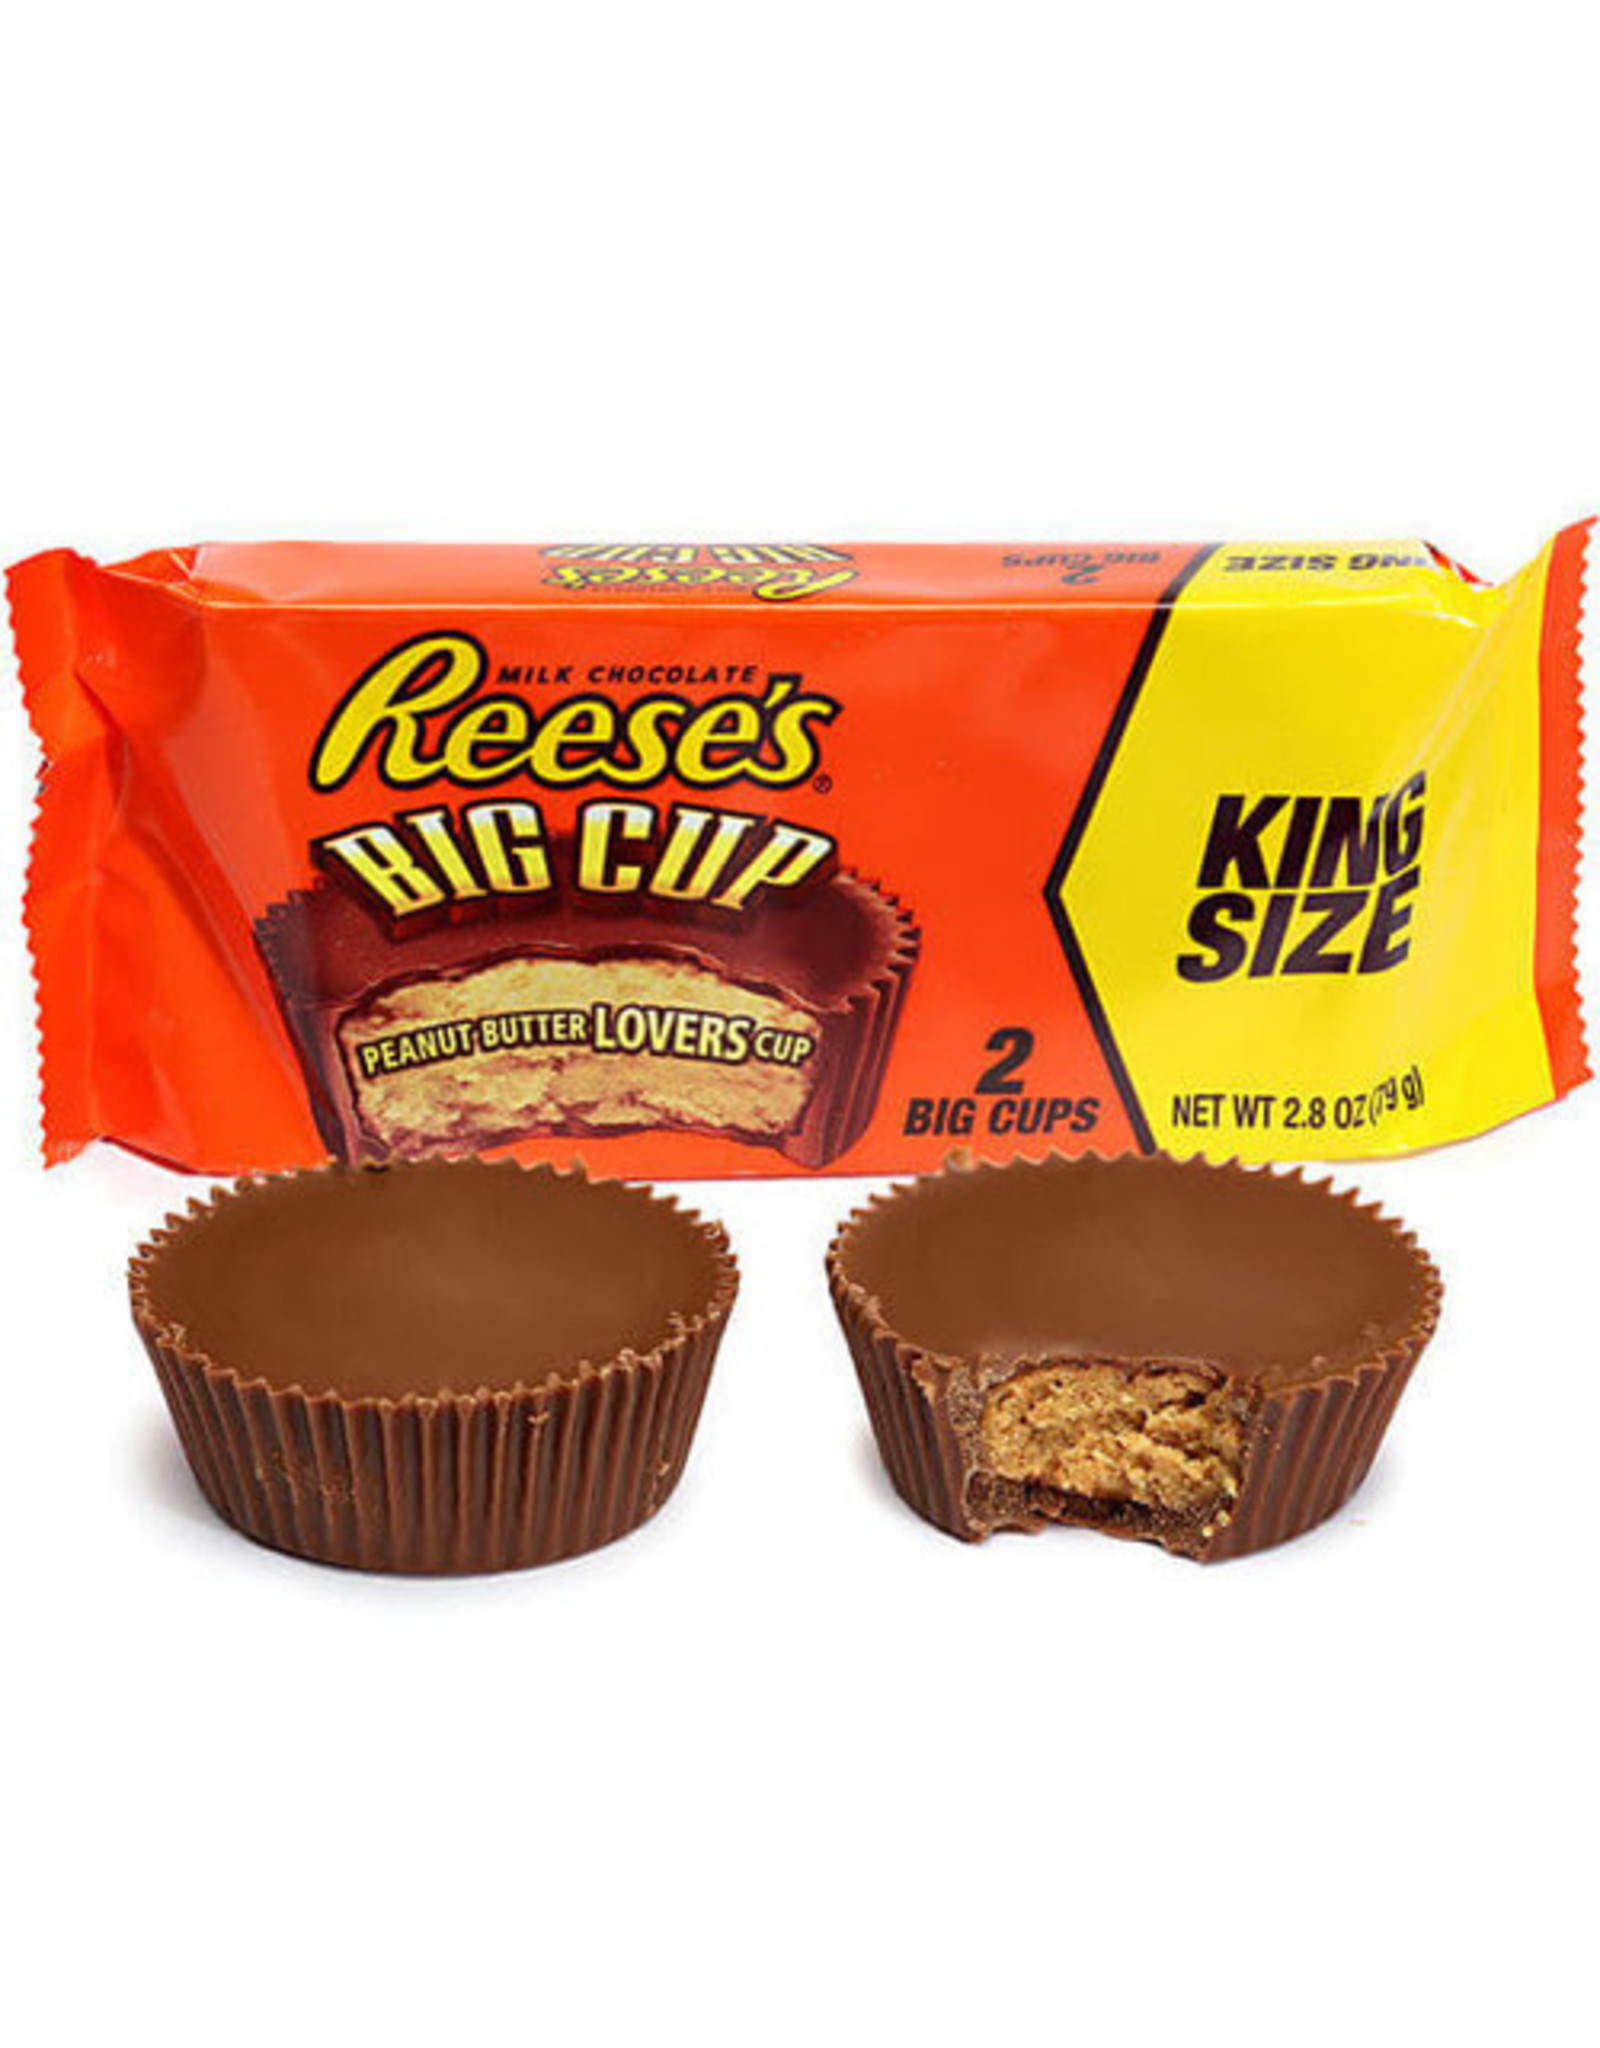 Reese's Big Cup - King Size - 2 Big Cups - 79g